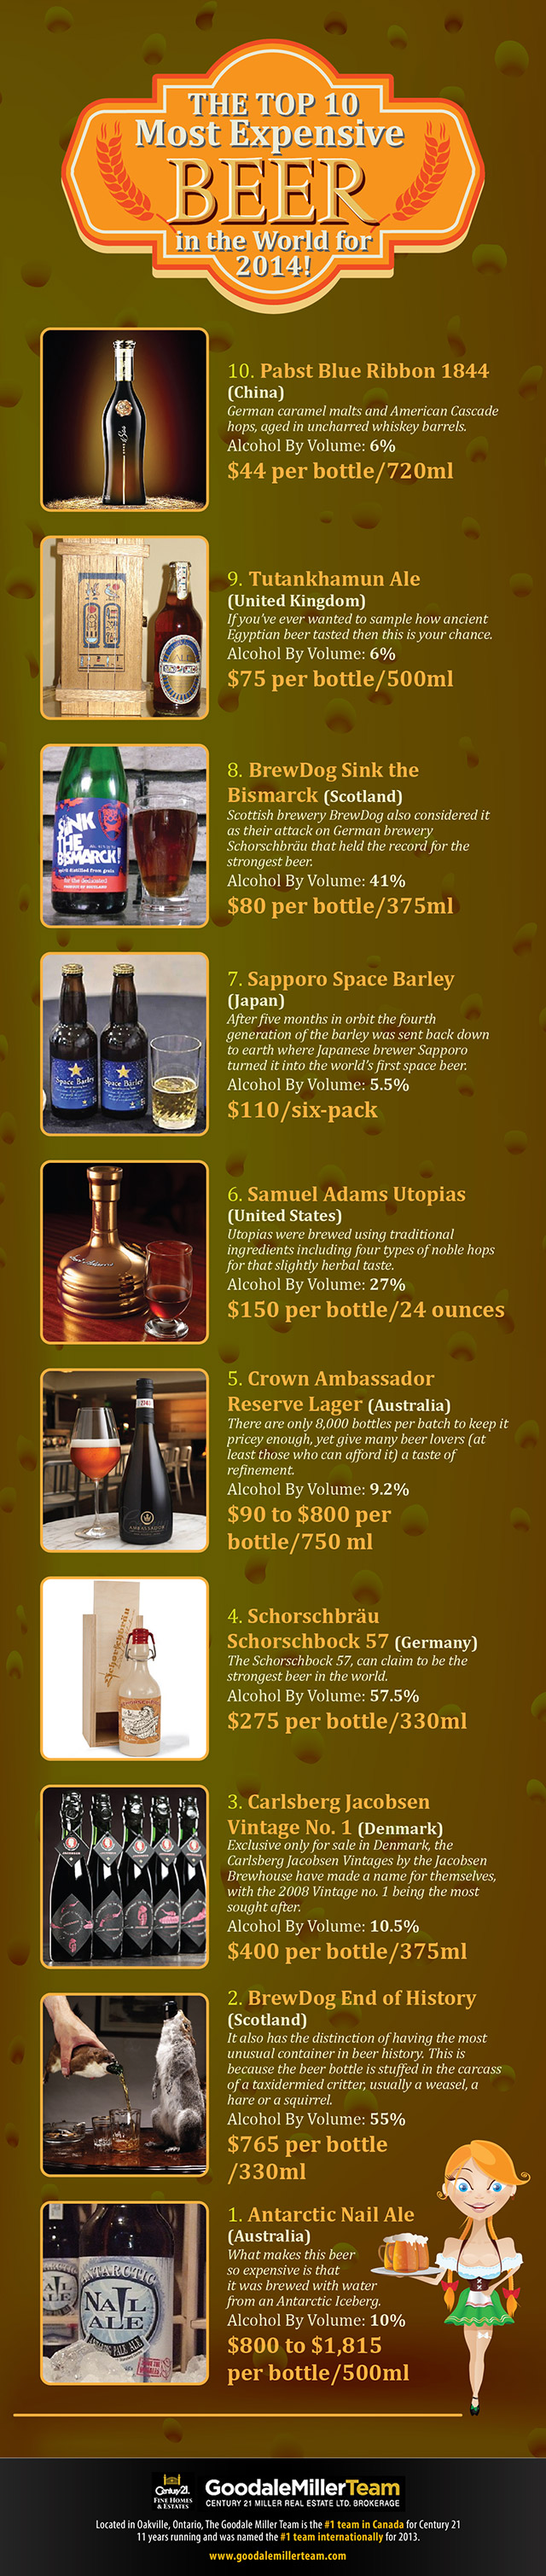 The Worlds Greatest Luxury Beers